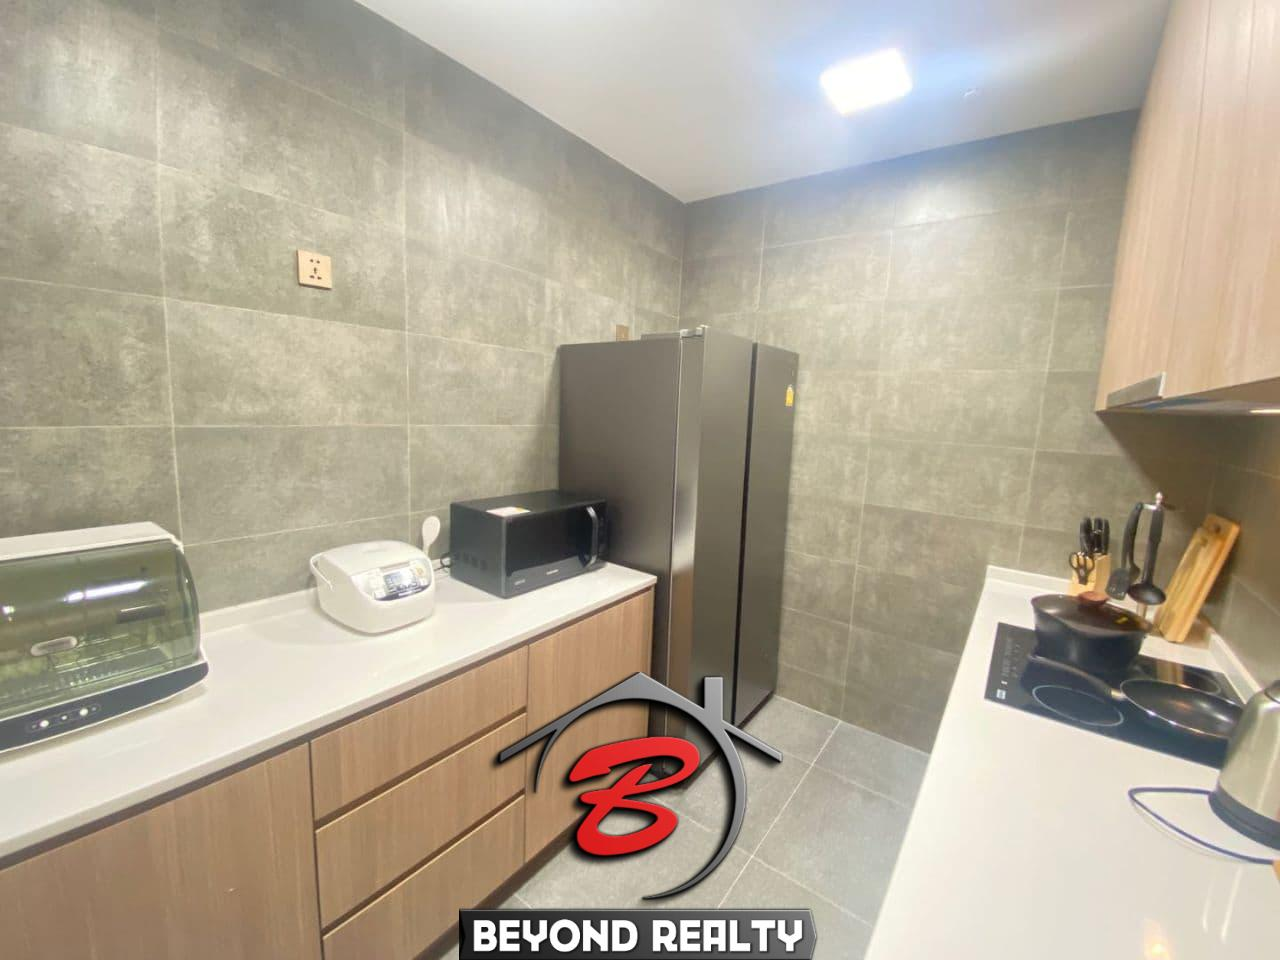 the kitchen of 2br spacious luxury serviced condo for rent in Veal Vong 7 Makara Phnom Penh